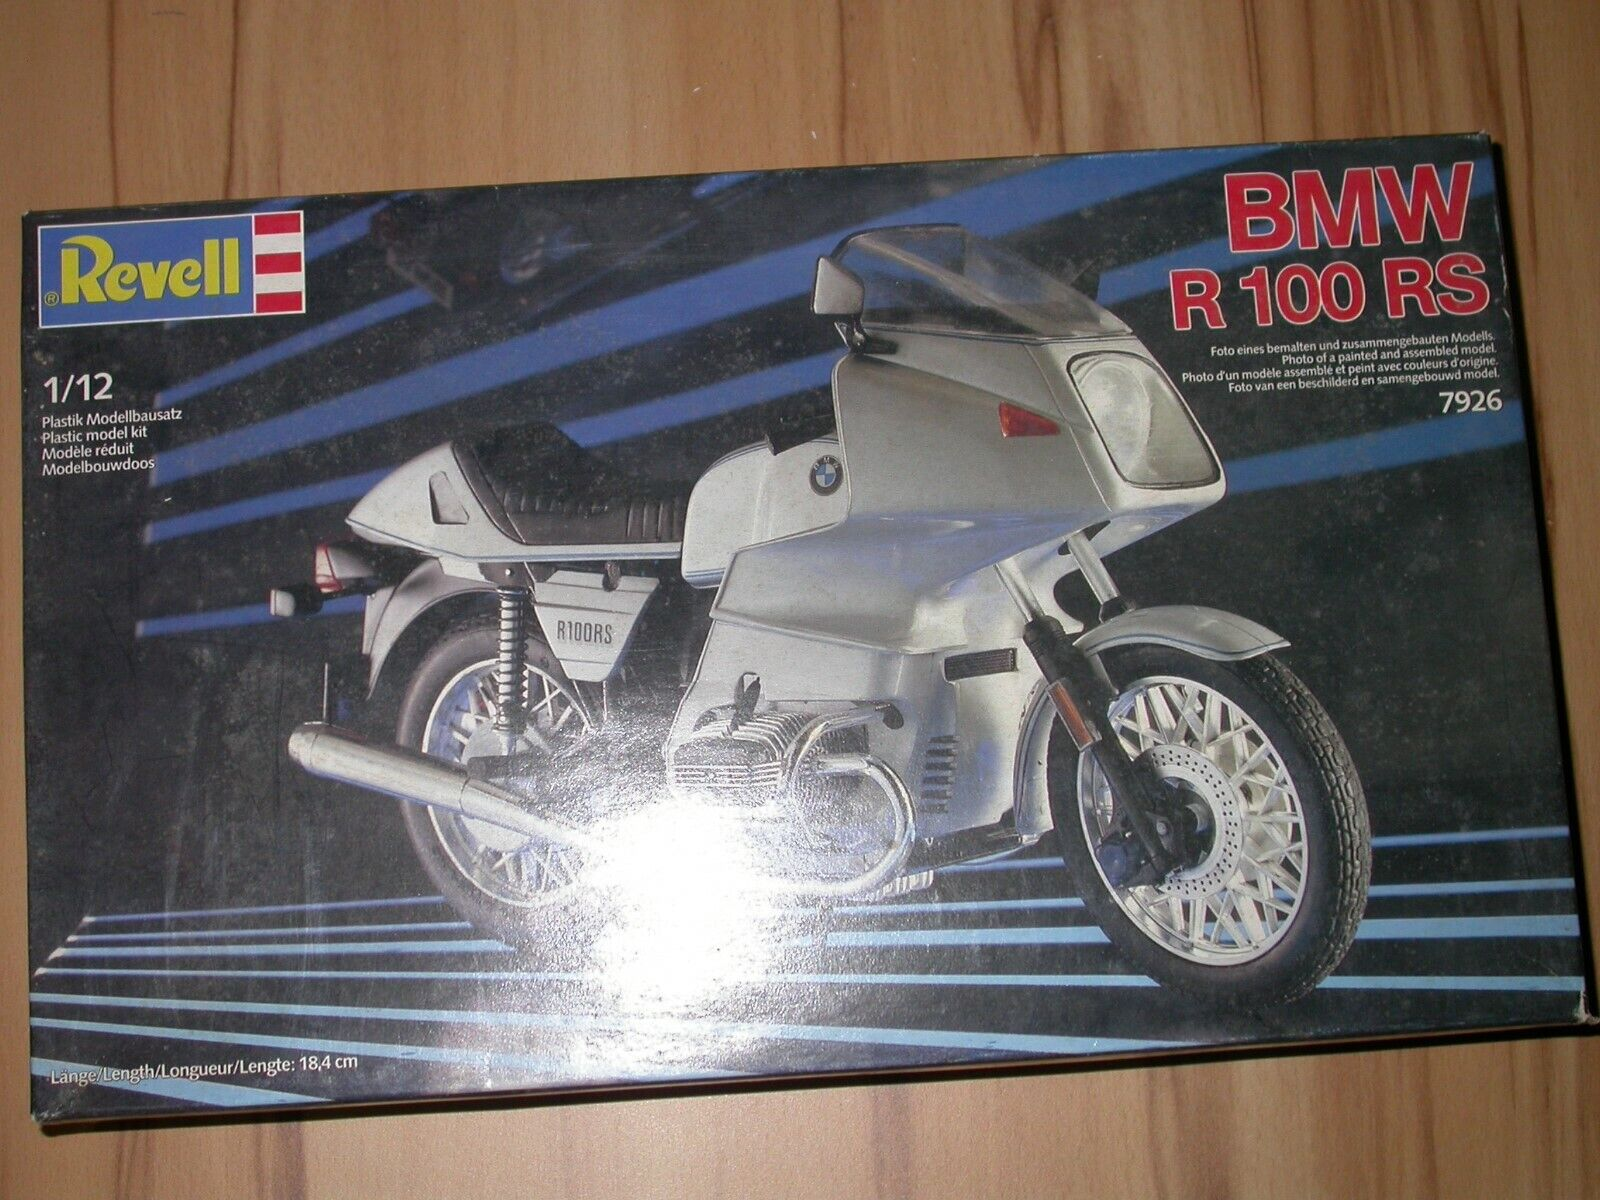 BMW R 100 RS, Revell, 1 12